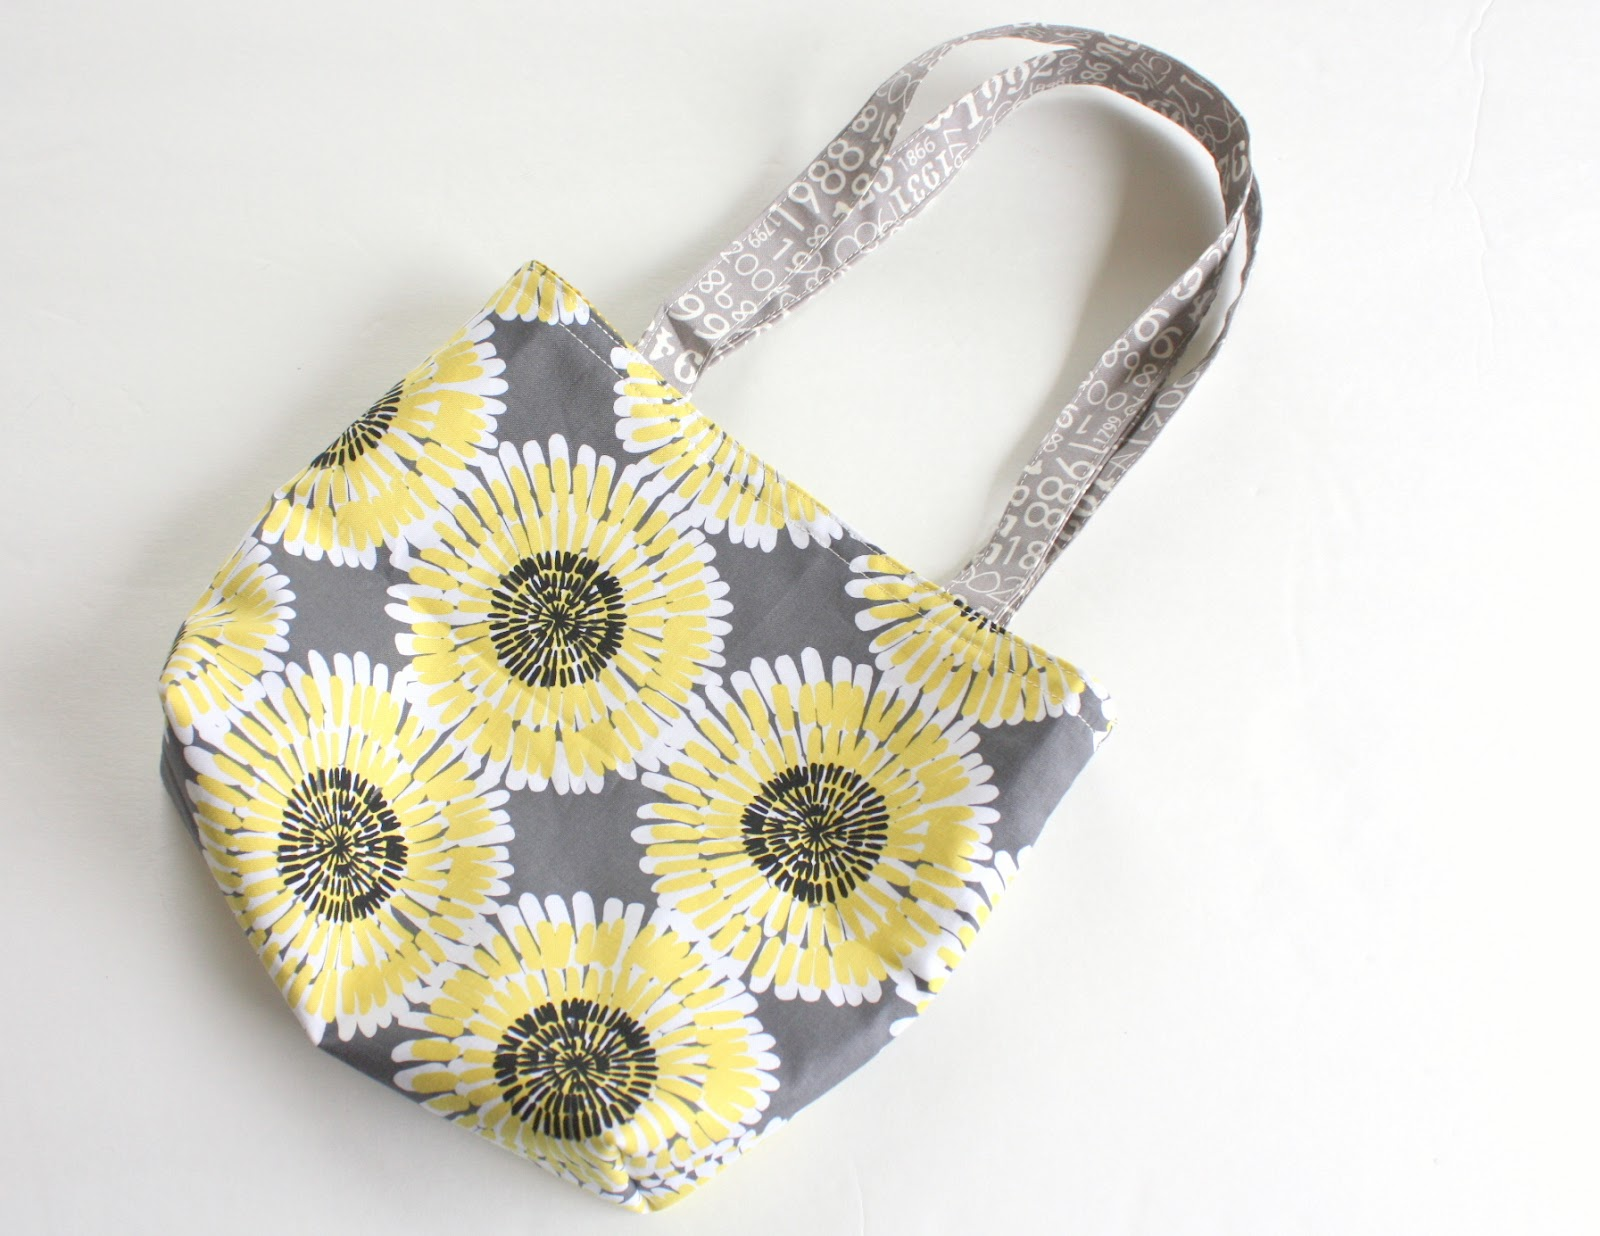 A gray and yellow tote